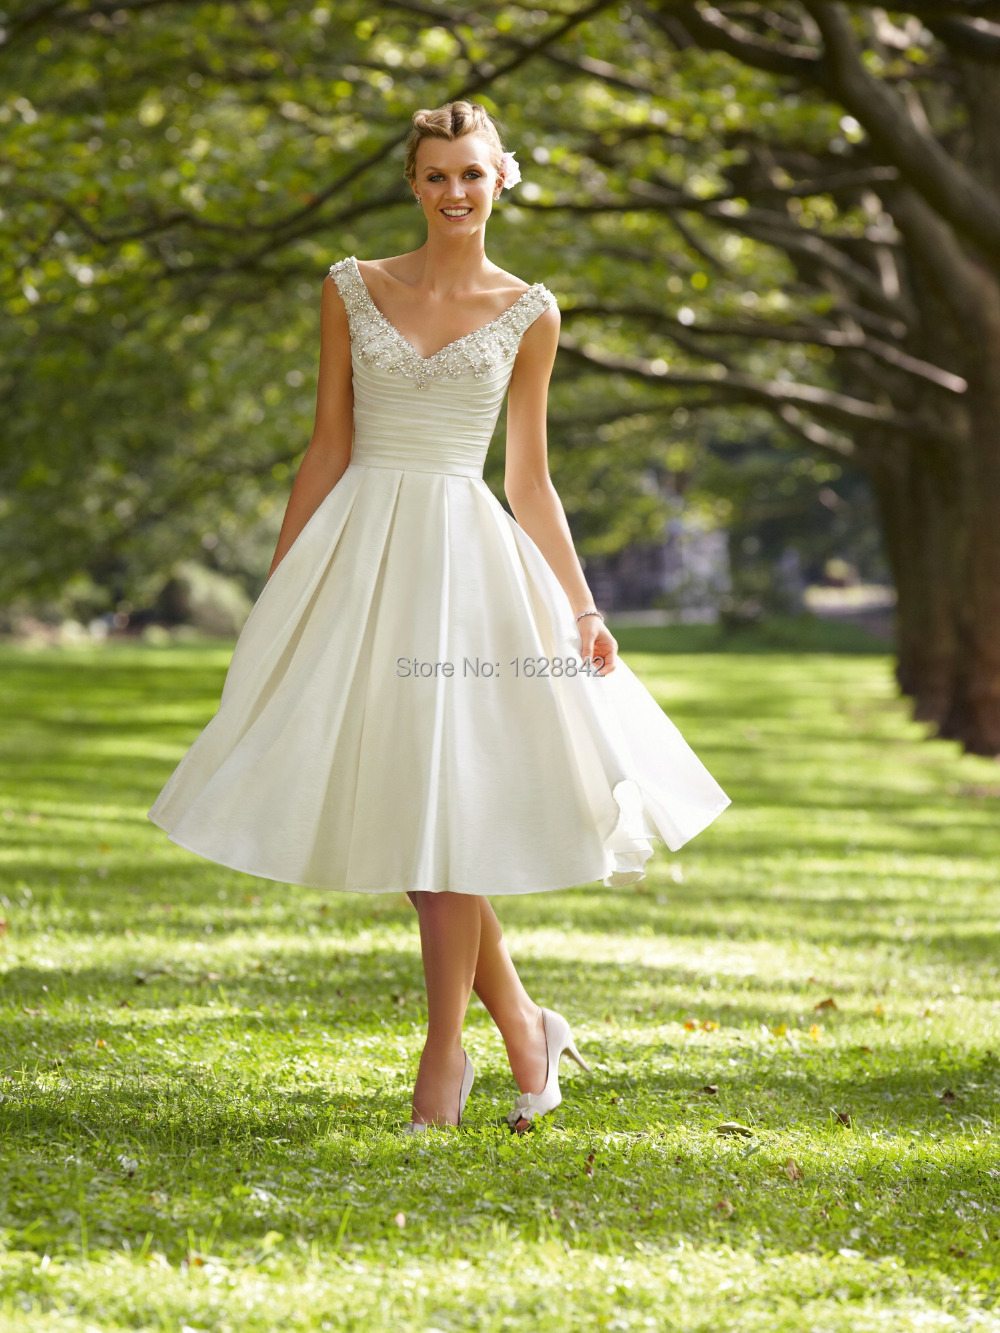 Free shipping short wedding dress robe de mariage romantic for Petite wedding dress designers